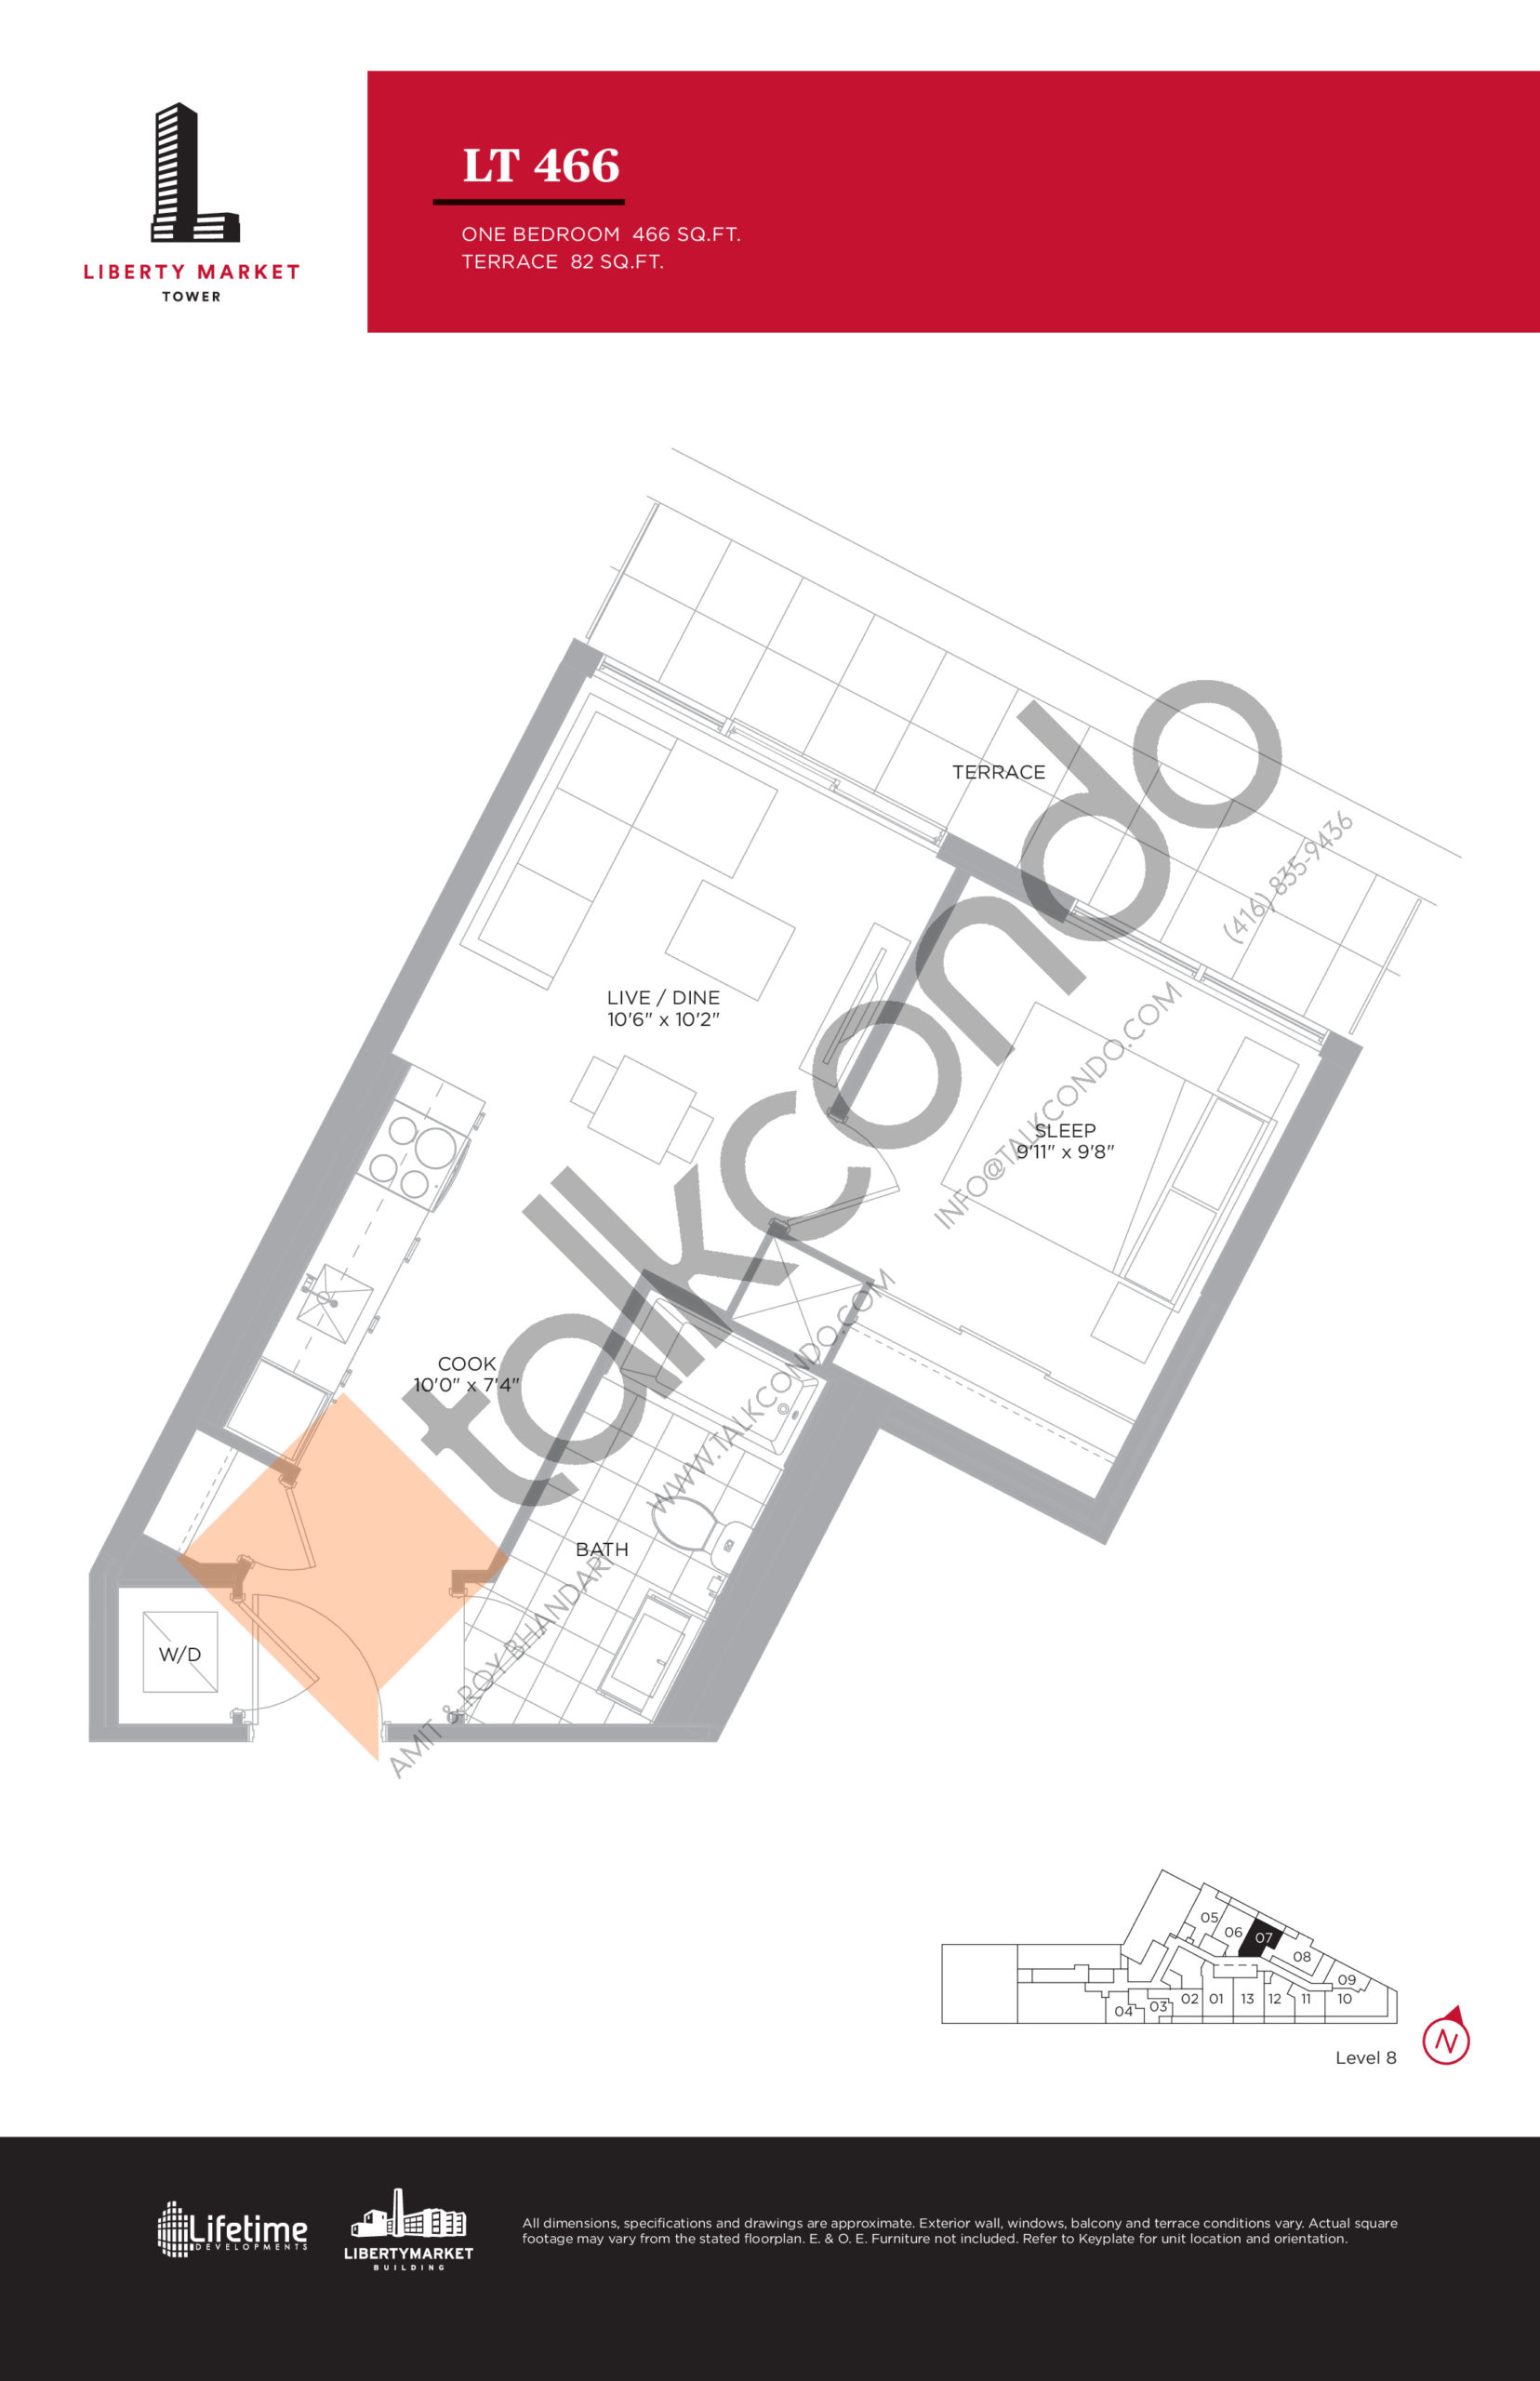 LT 466 - Terrace Collection Floor Plan at Liberty Market Tower Condos - 466 sq.ft